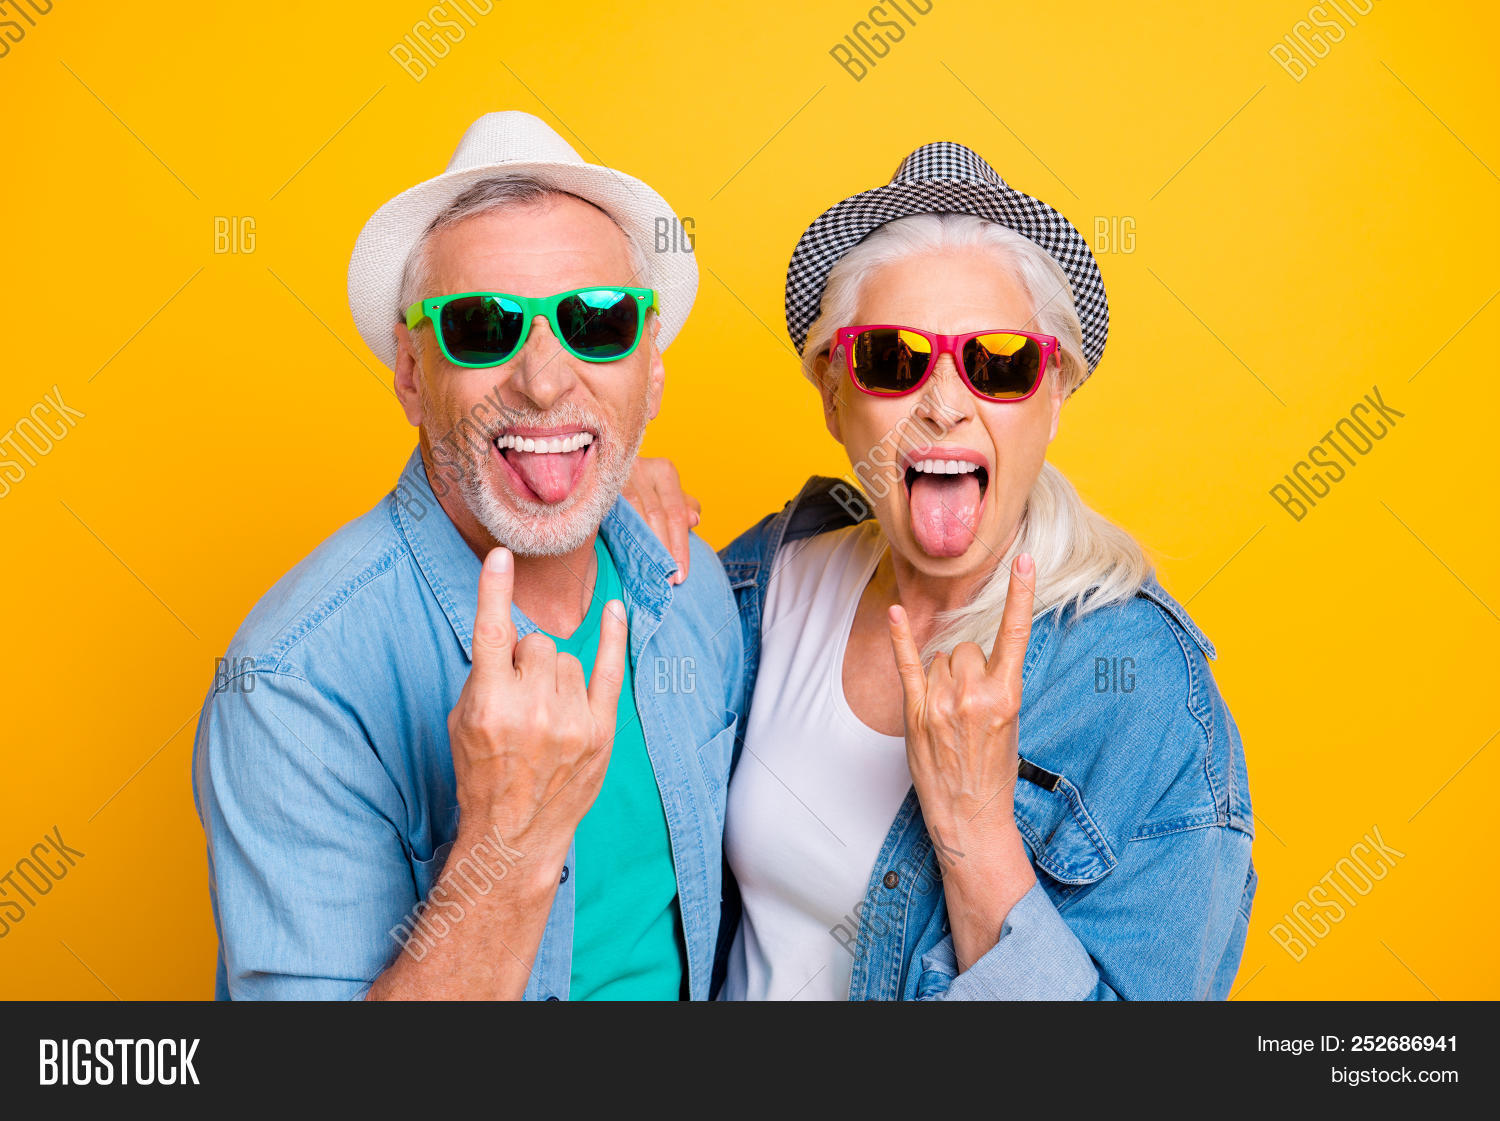 adult,age,couple,crazy,elderly,eyeglasses,eyewear,family,fan,female,fingers,friends,fun,gesture,glasses,grandfather,grandmother,gray-haired,grimacing,happy,hat,headwear,horned,husband,jeans,joy,love,lovers,mad,male,man,mature,old,pensioner,people,relationship,retired,rock-and-roll,rockers,senior,show,smiling,spectacles,summer,together,tongue-out,two,wife,woman,yellow